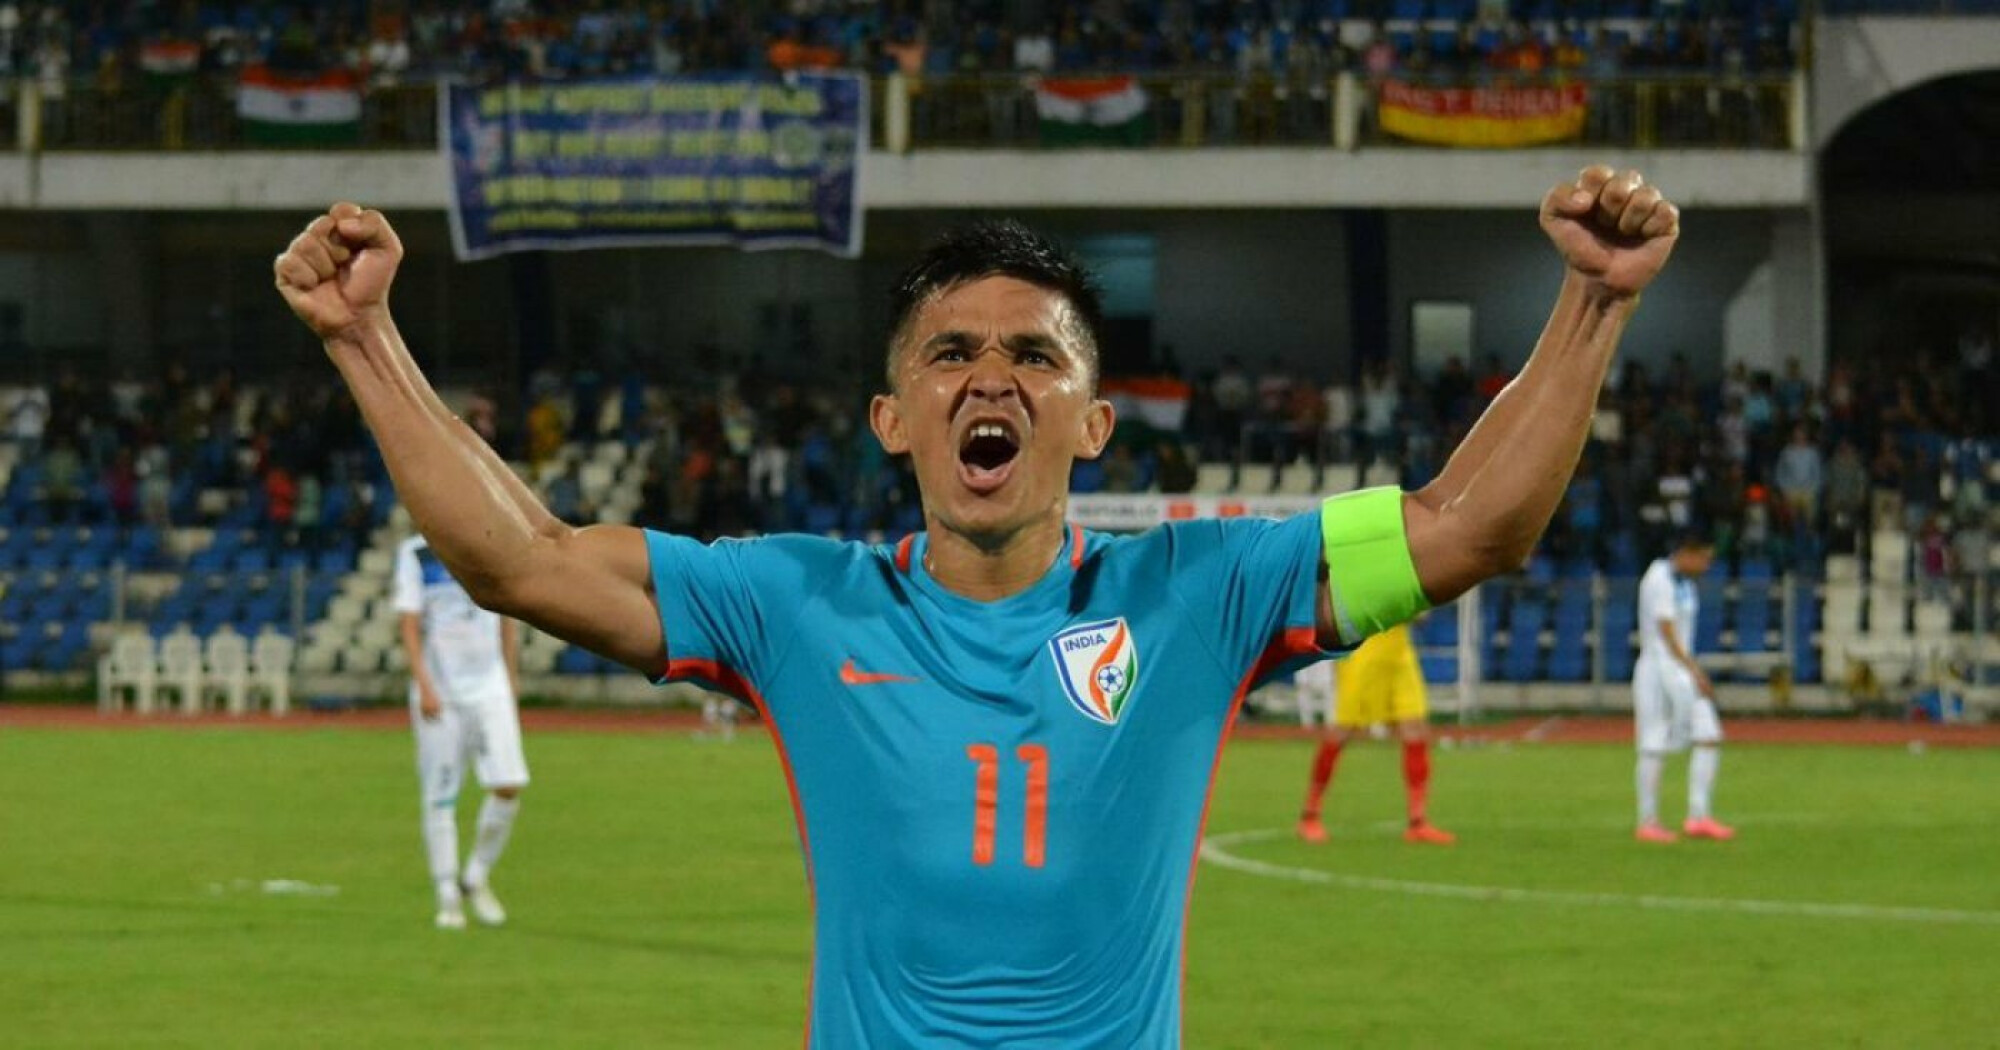 The Chhetri/Virat social media pull that could spur the nation on to Asian Cup glory